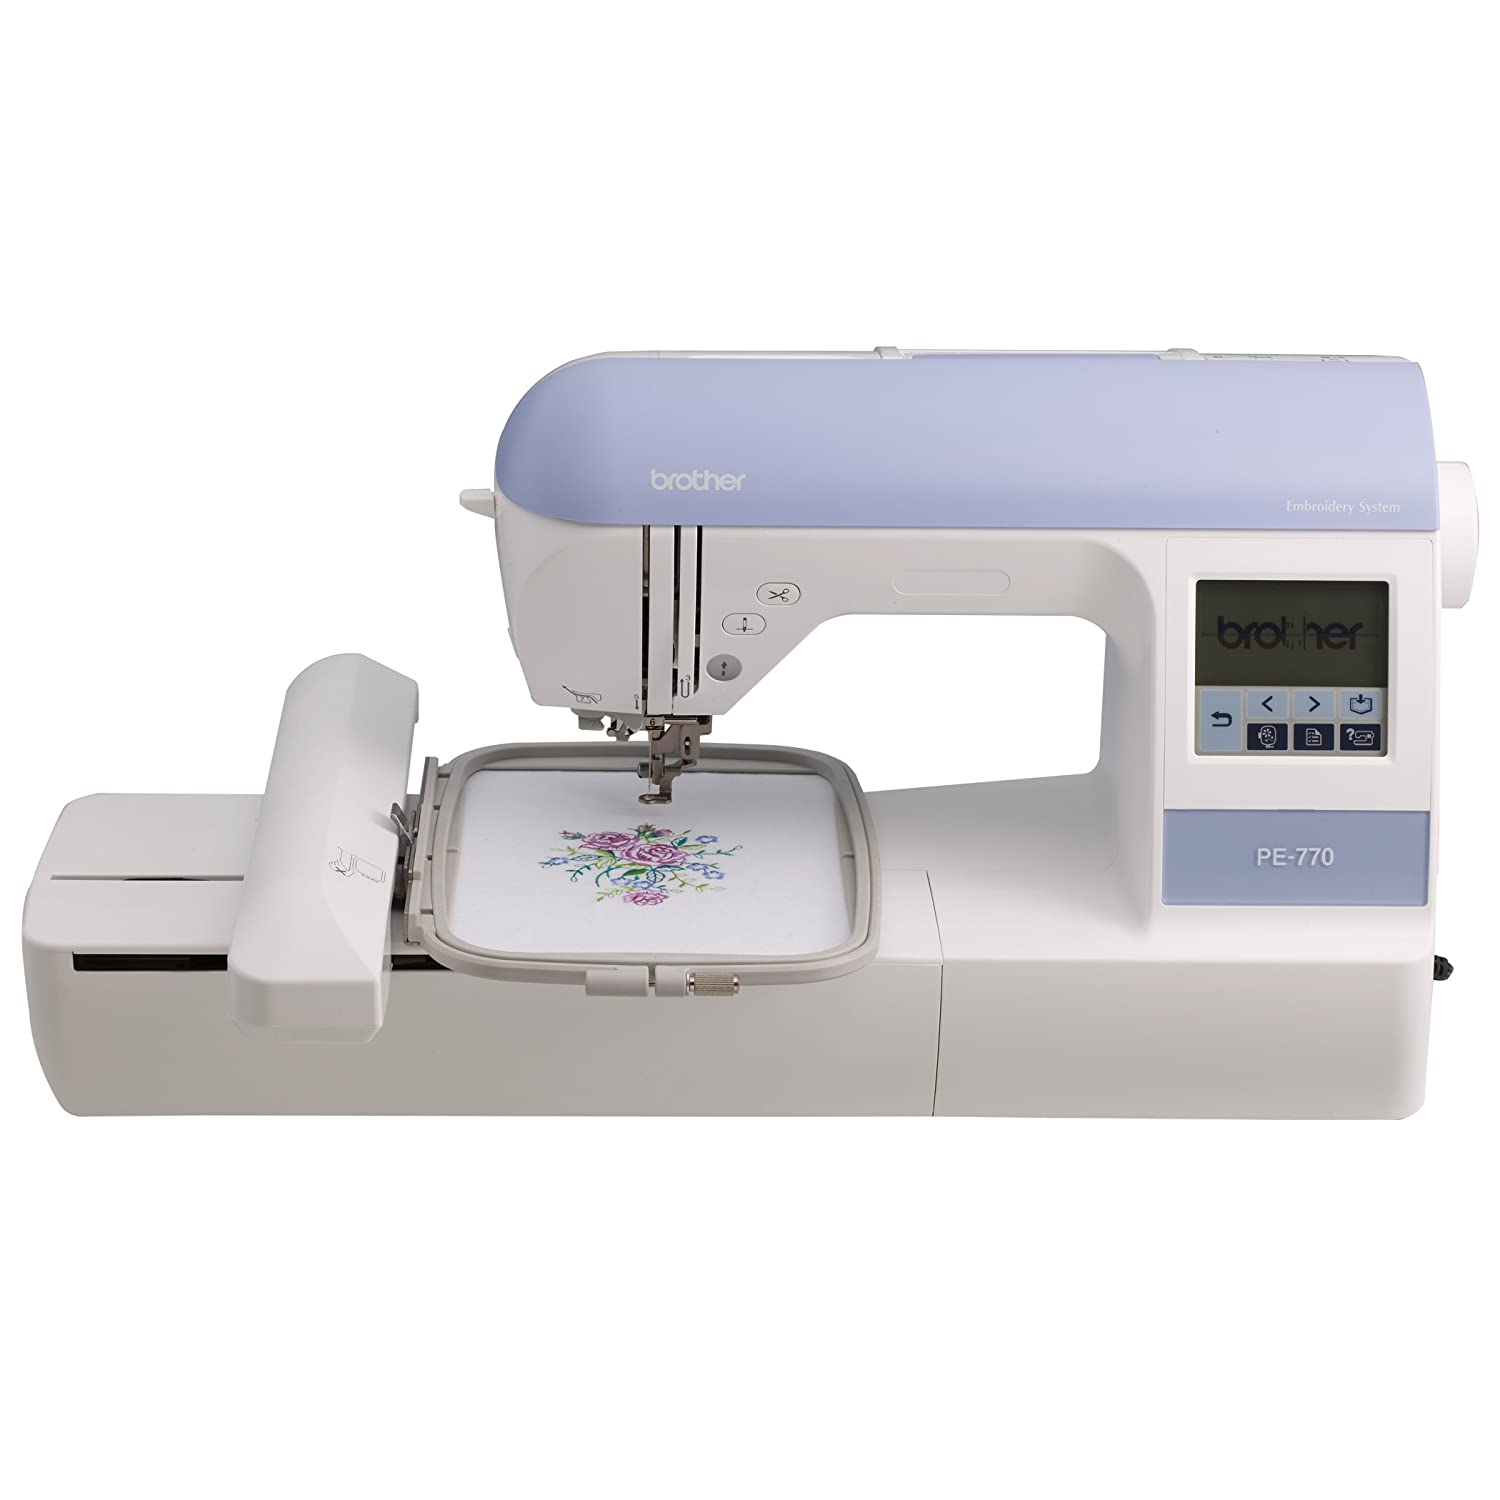 The Best Embroidery Machine 1